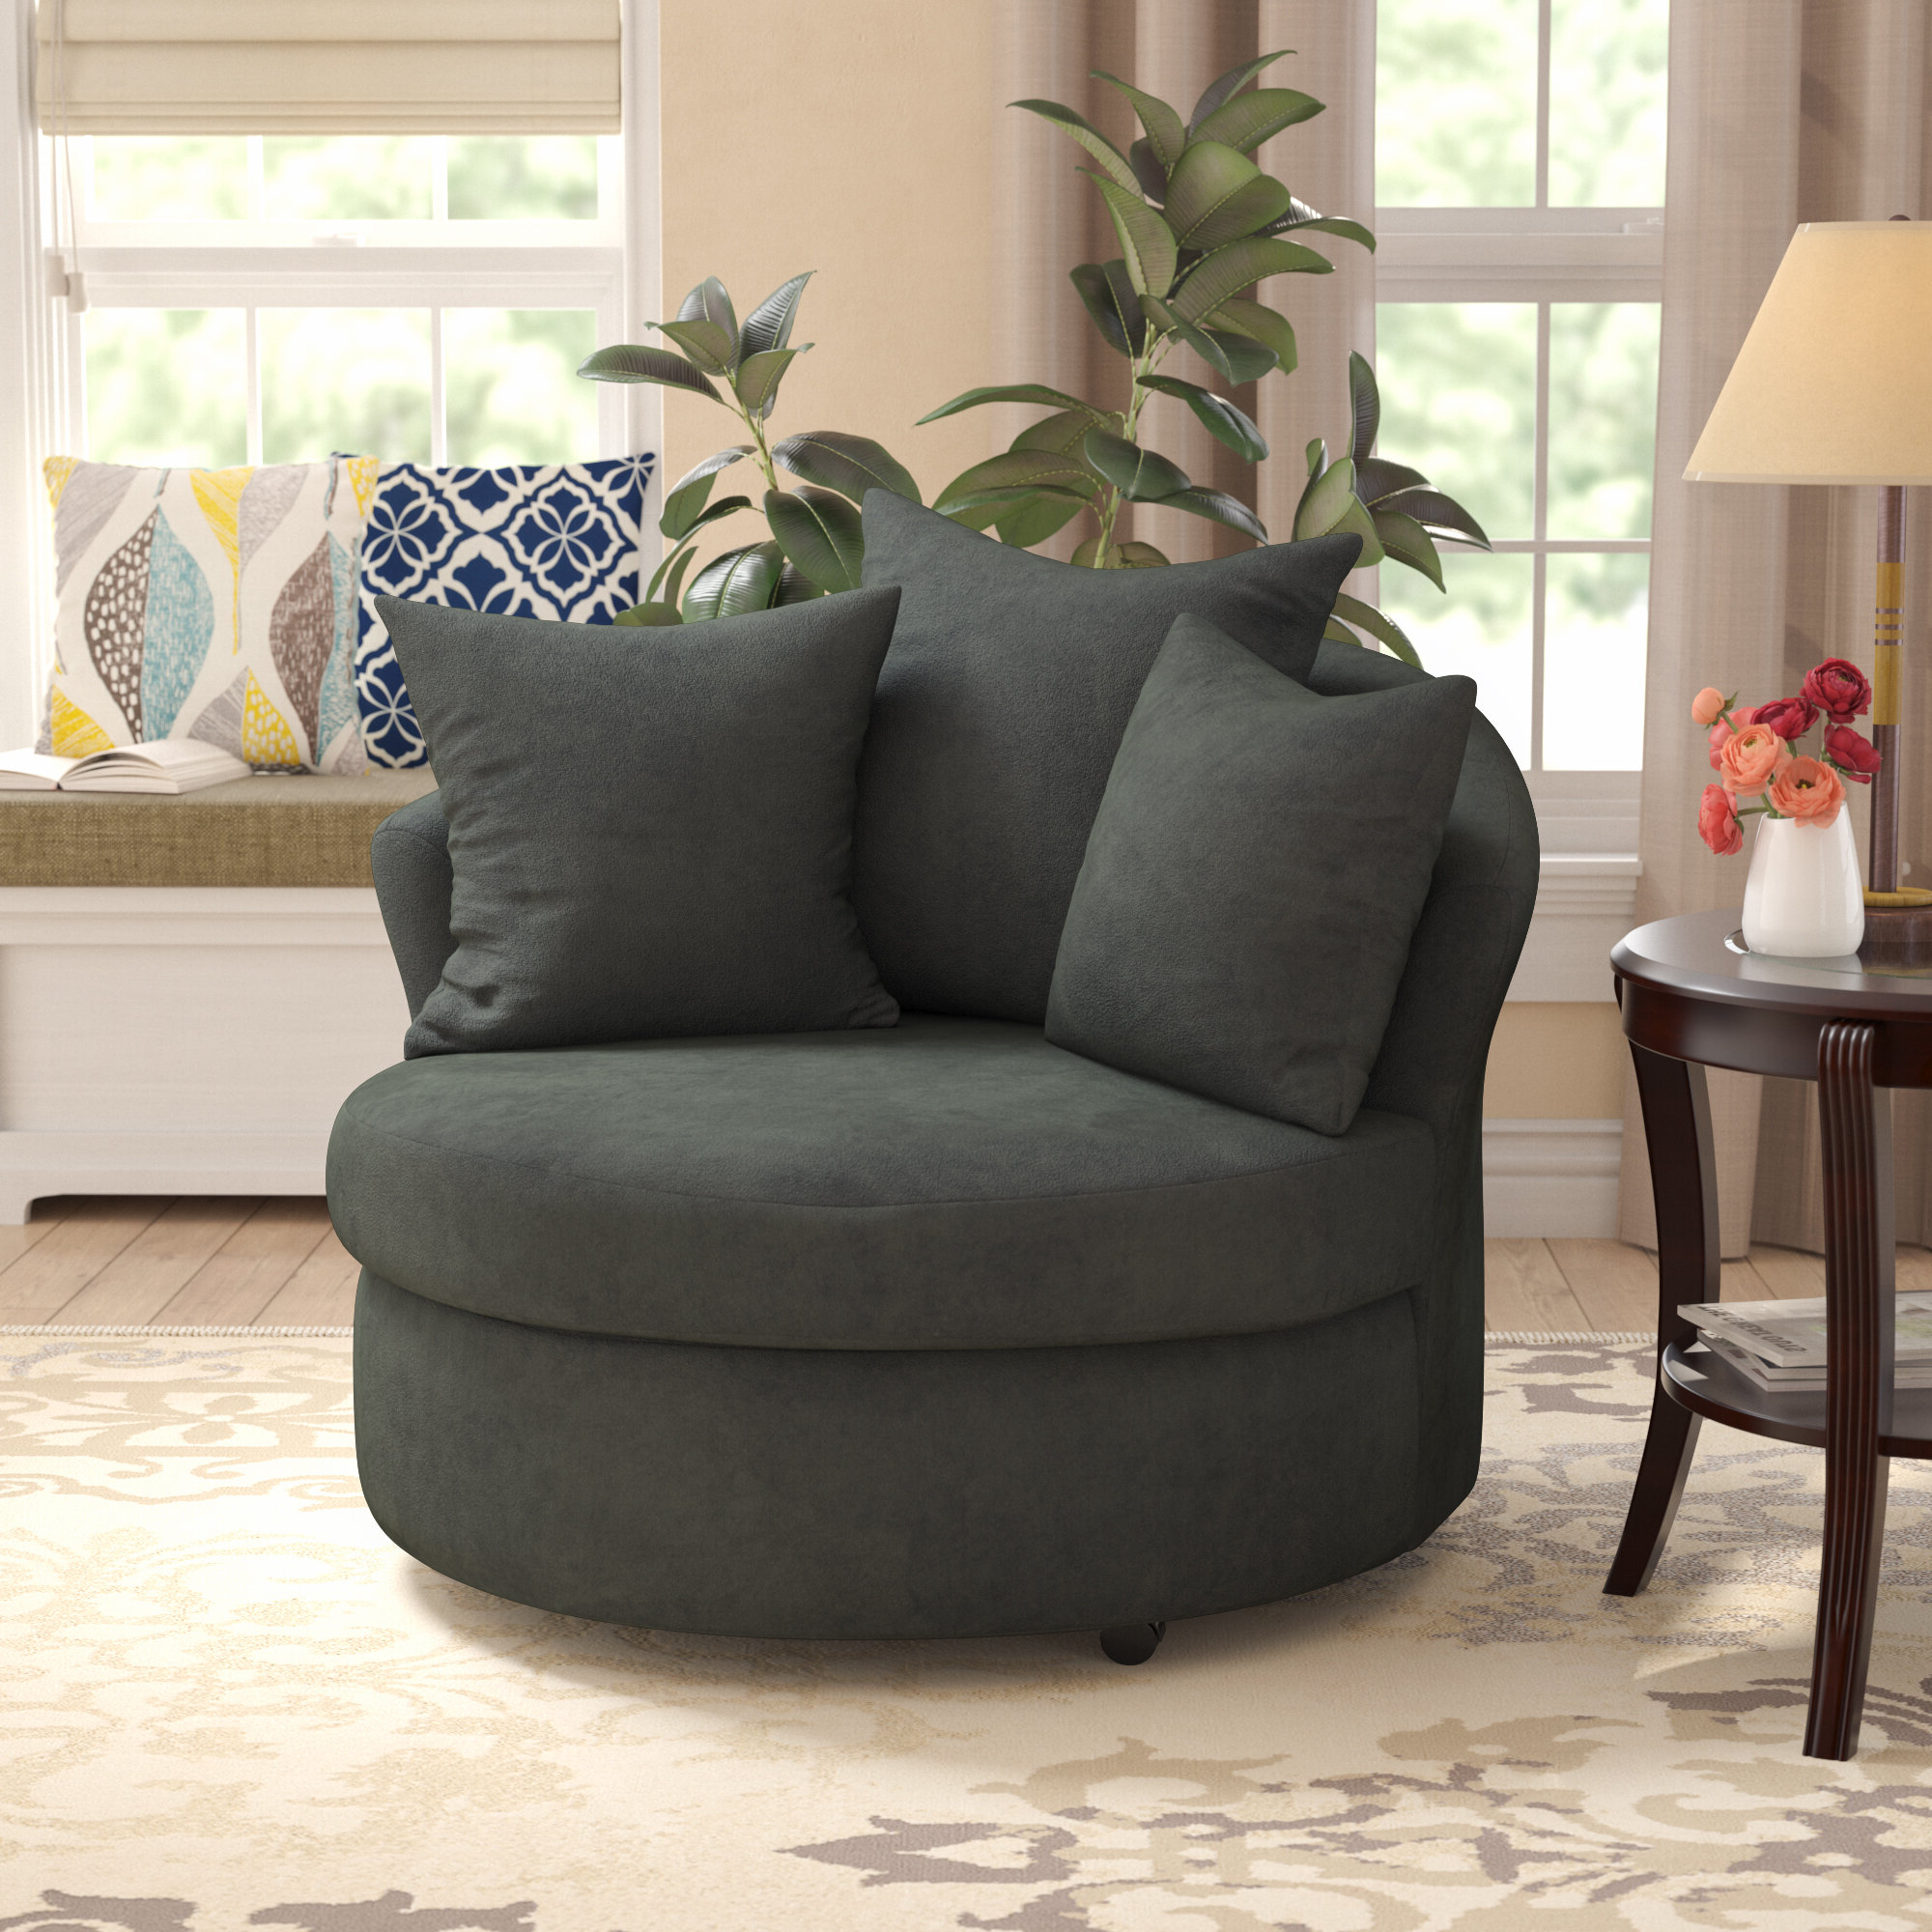 Most Popular Molinari Swivel Barrel Chairs Pertaining To Varennes Barrel Chair (View 19 of 20)